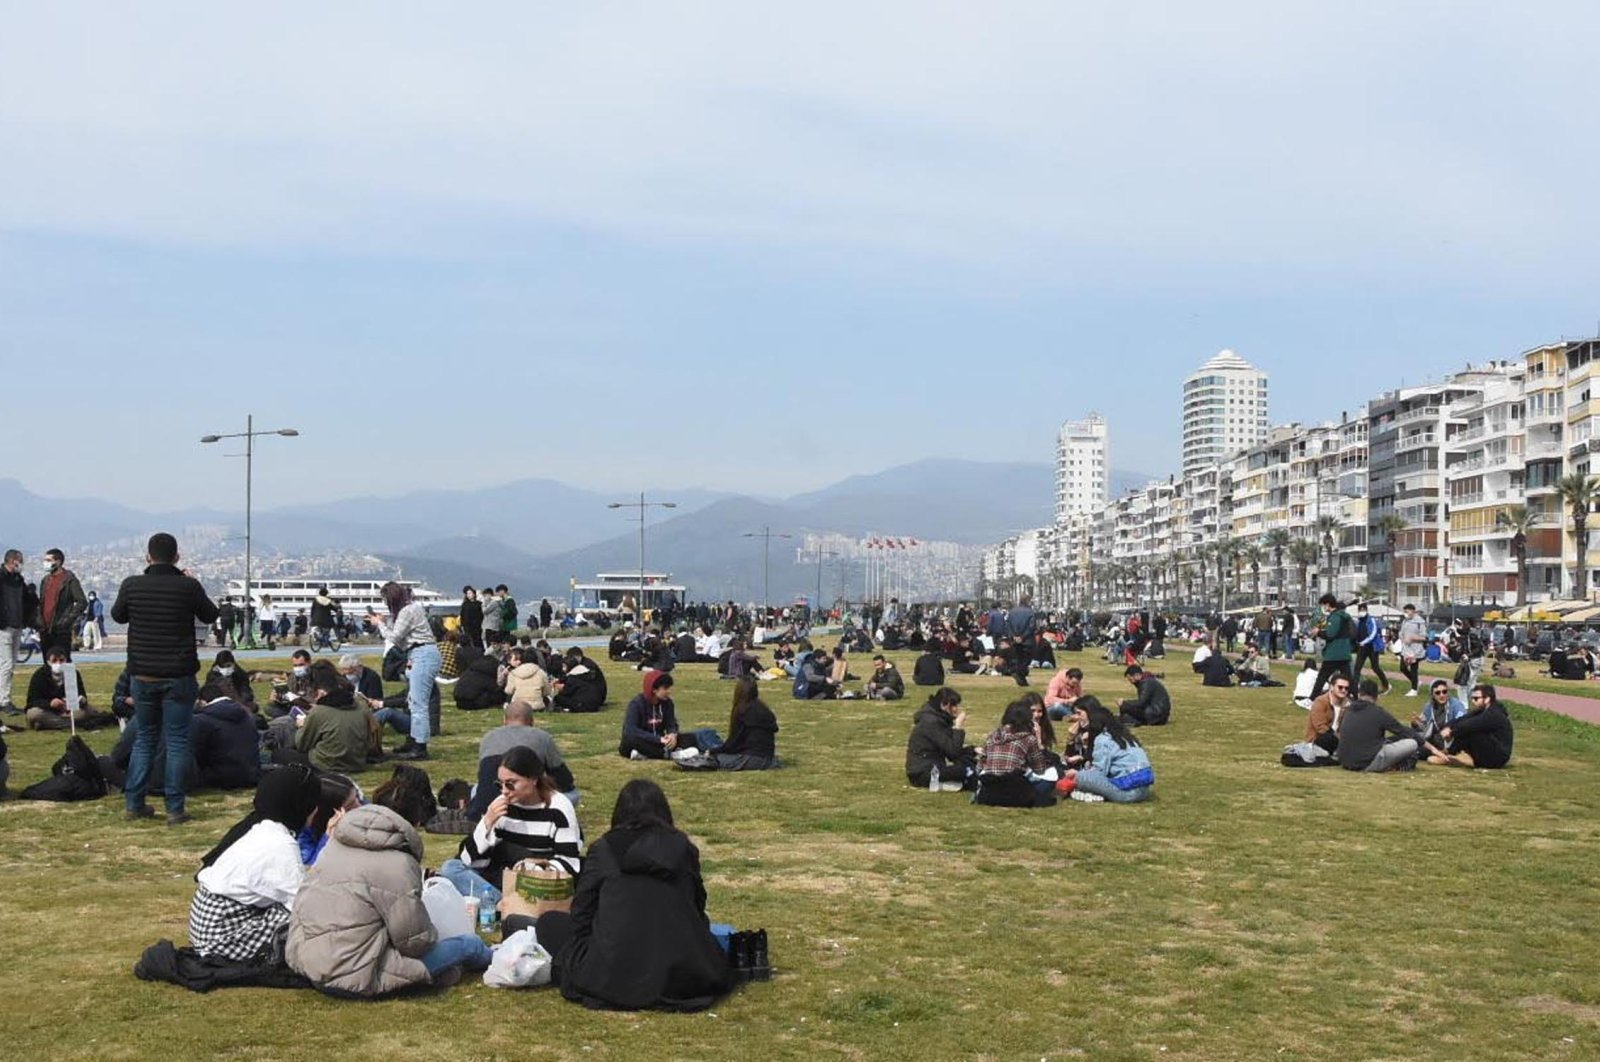 Crowds enjoy a lockdown-free Saturday at the Kordon waterfront area in the Konak district in Izmir, western Turkey, on March 13, 2021. (DHA Photo)